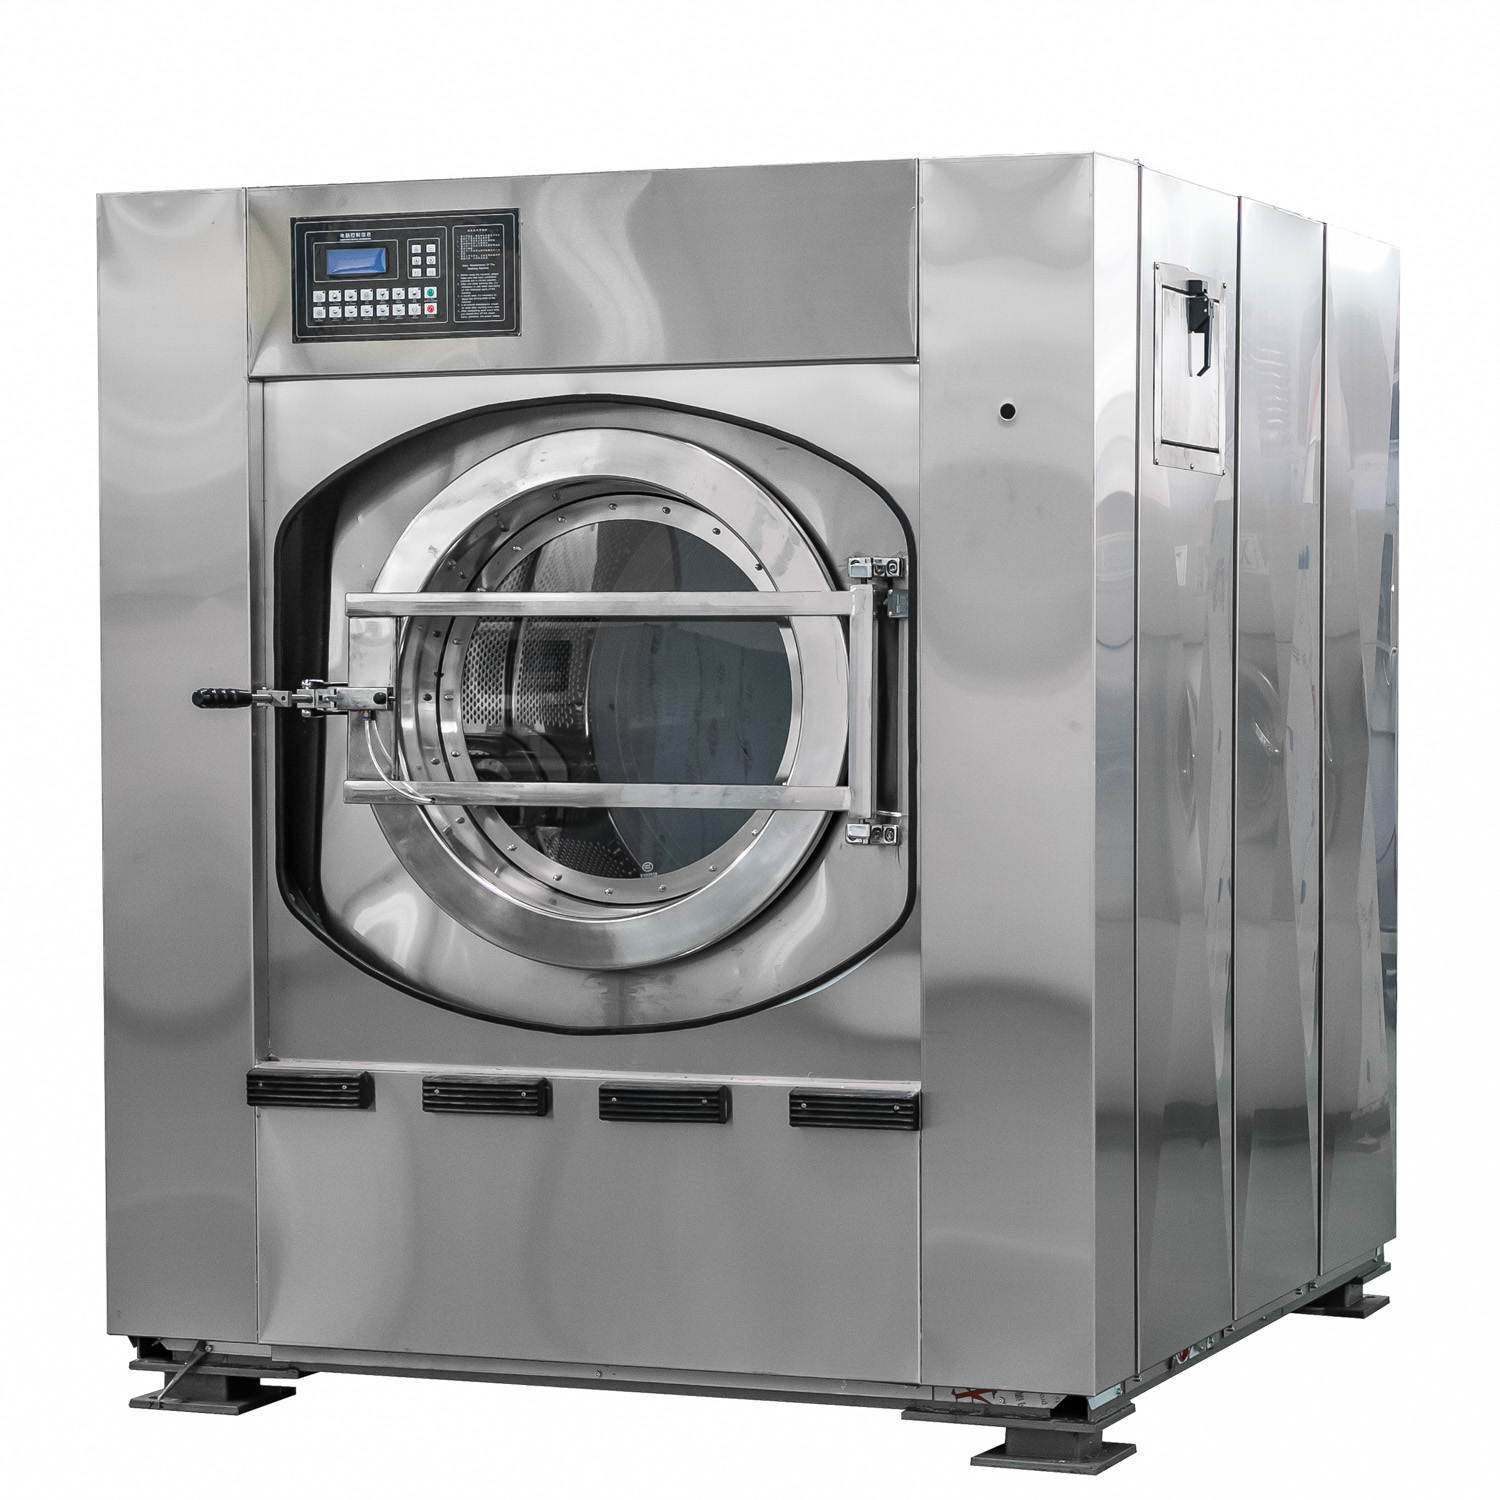 What is a washer extractor?